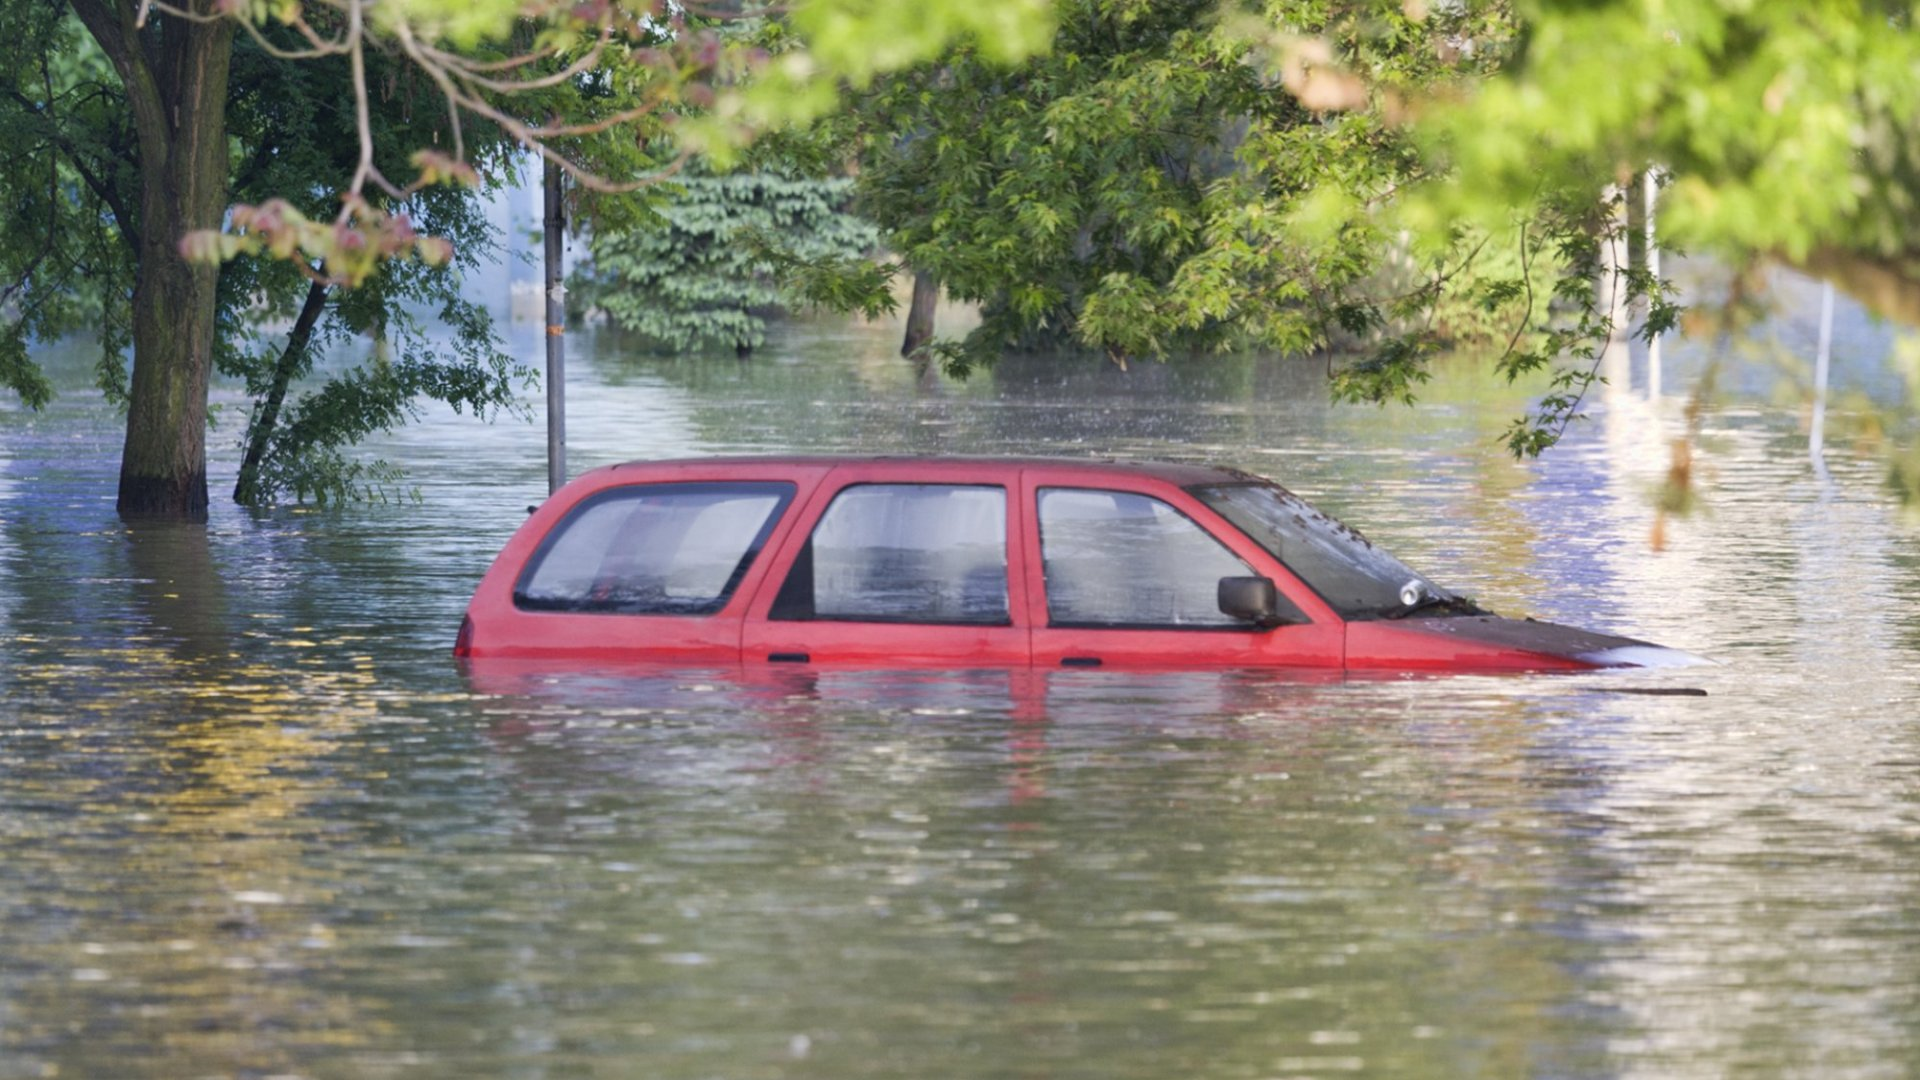 Flooded in Houston? Take These Steps to Access Tax and Financial Help